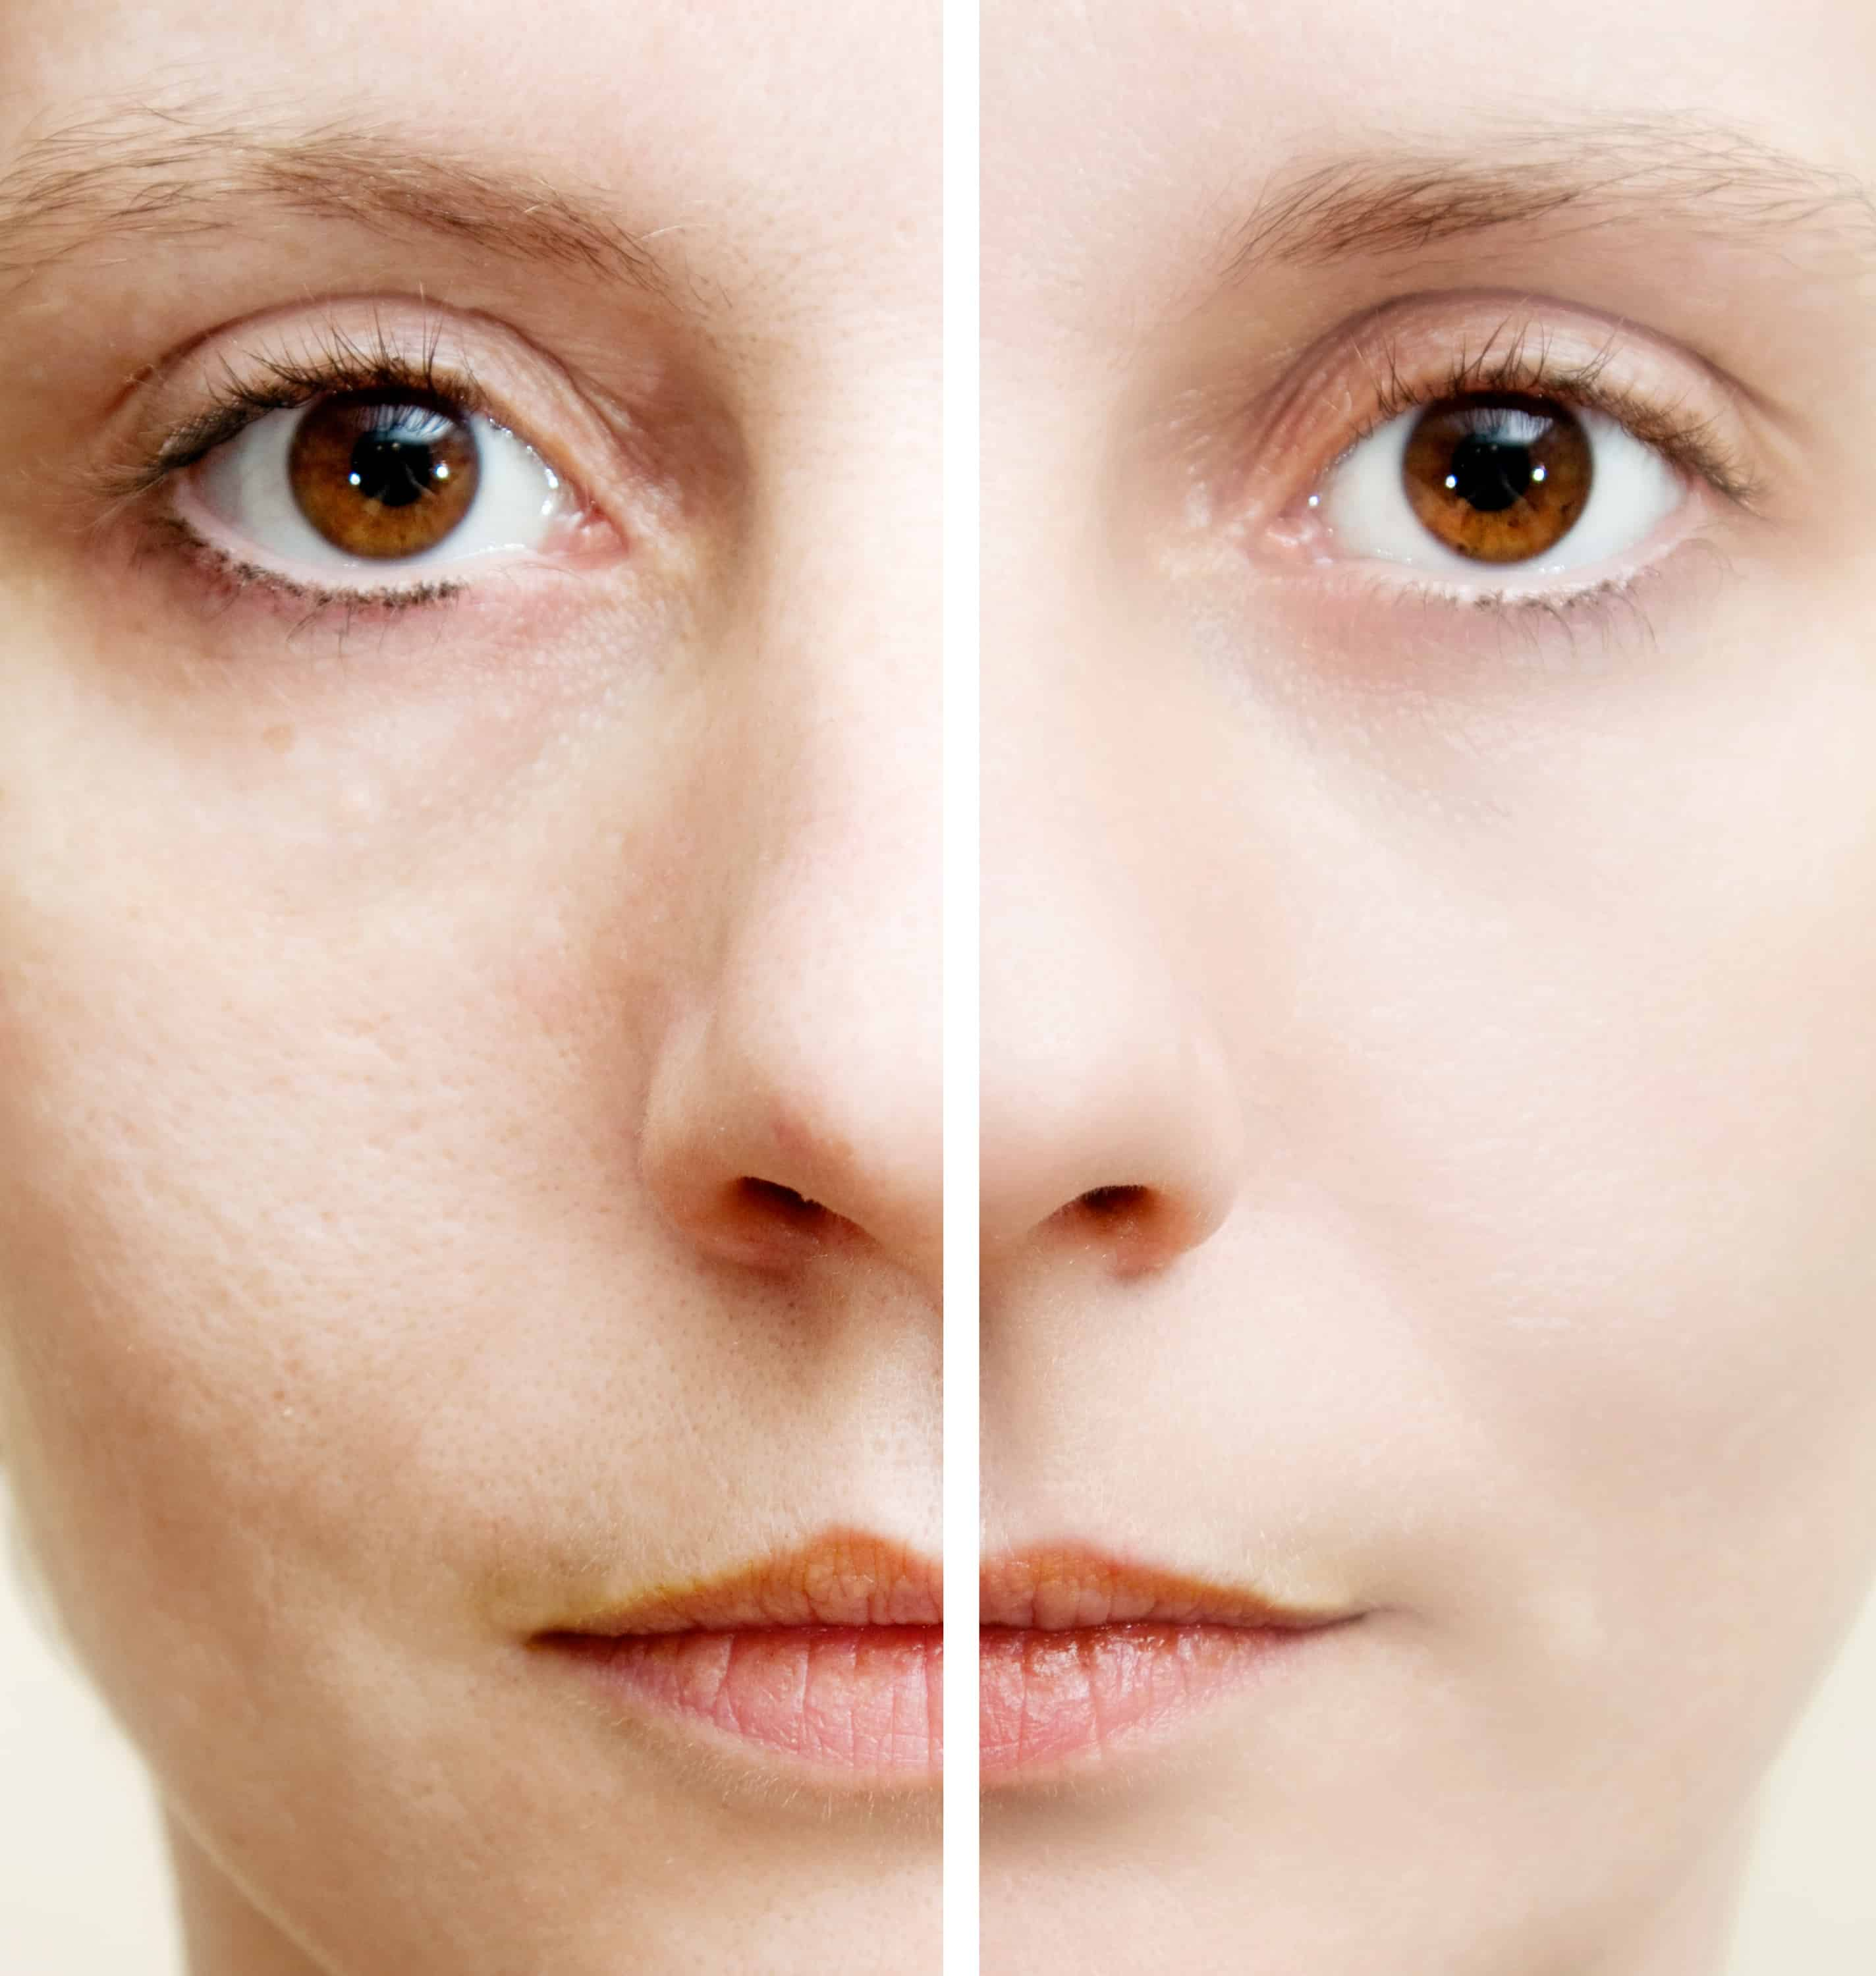 Difference with Microdermabrasion treatment